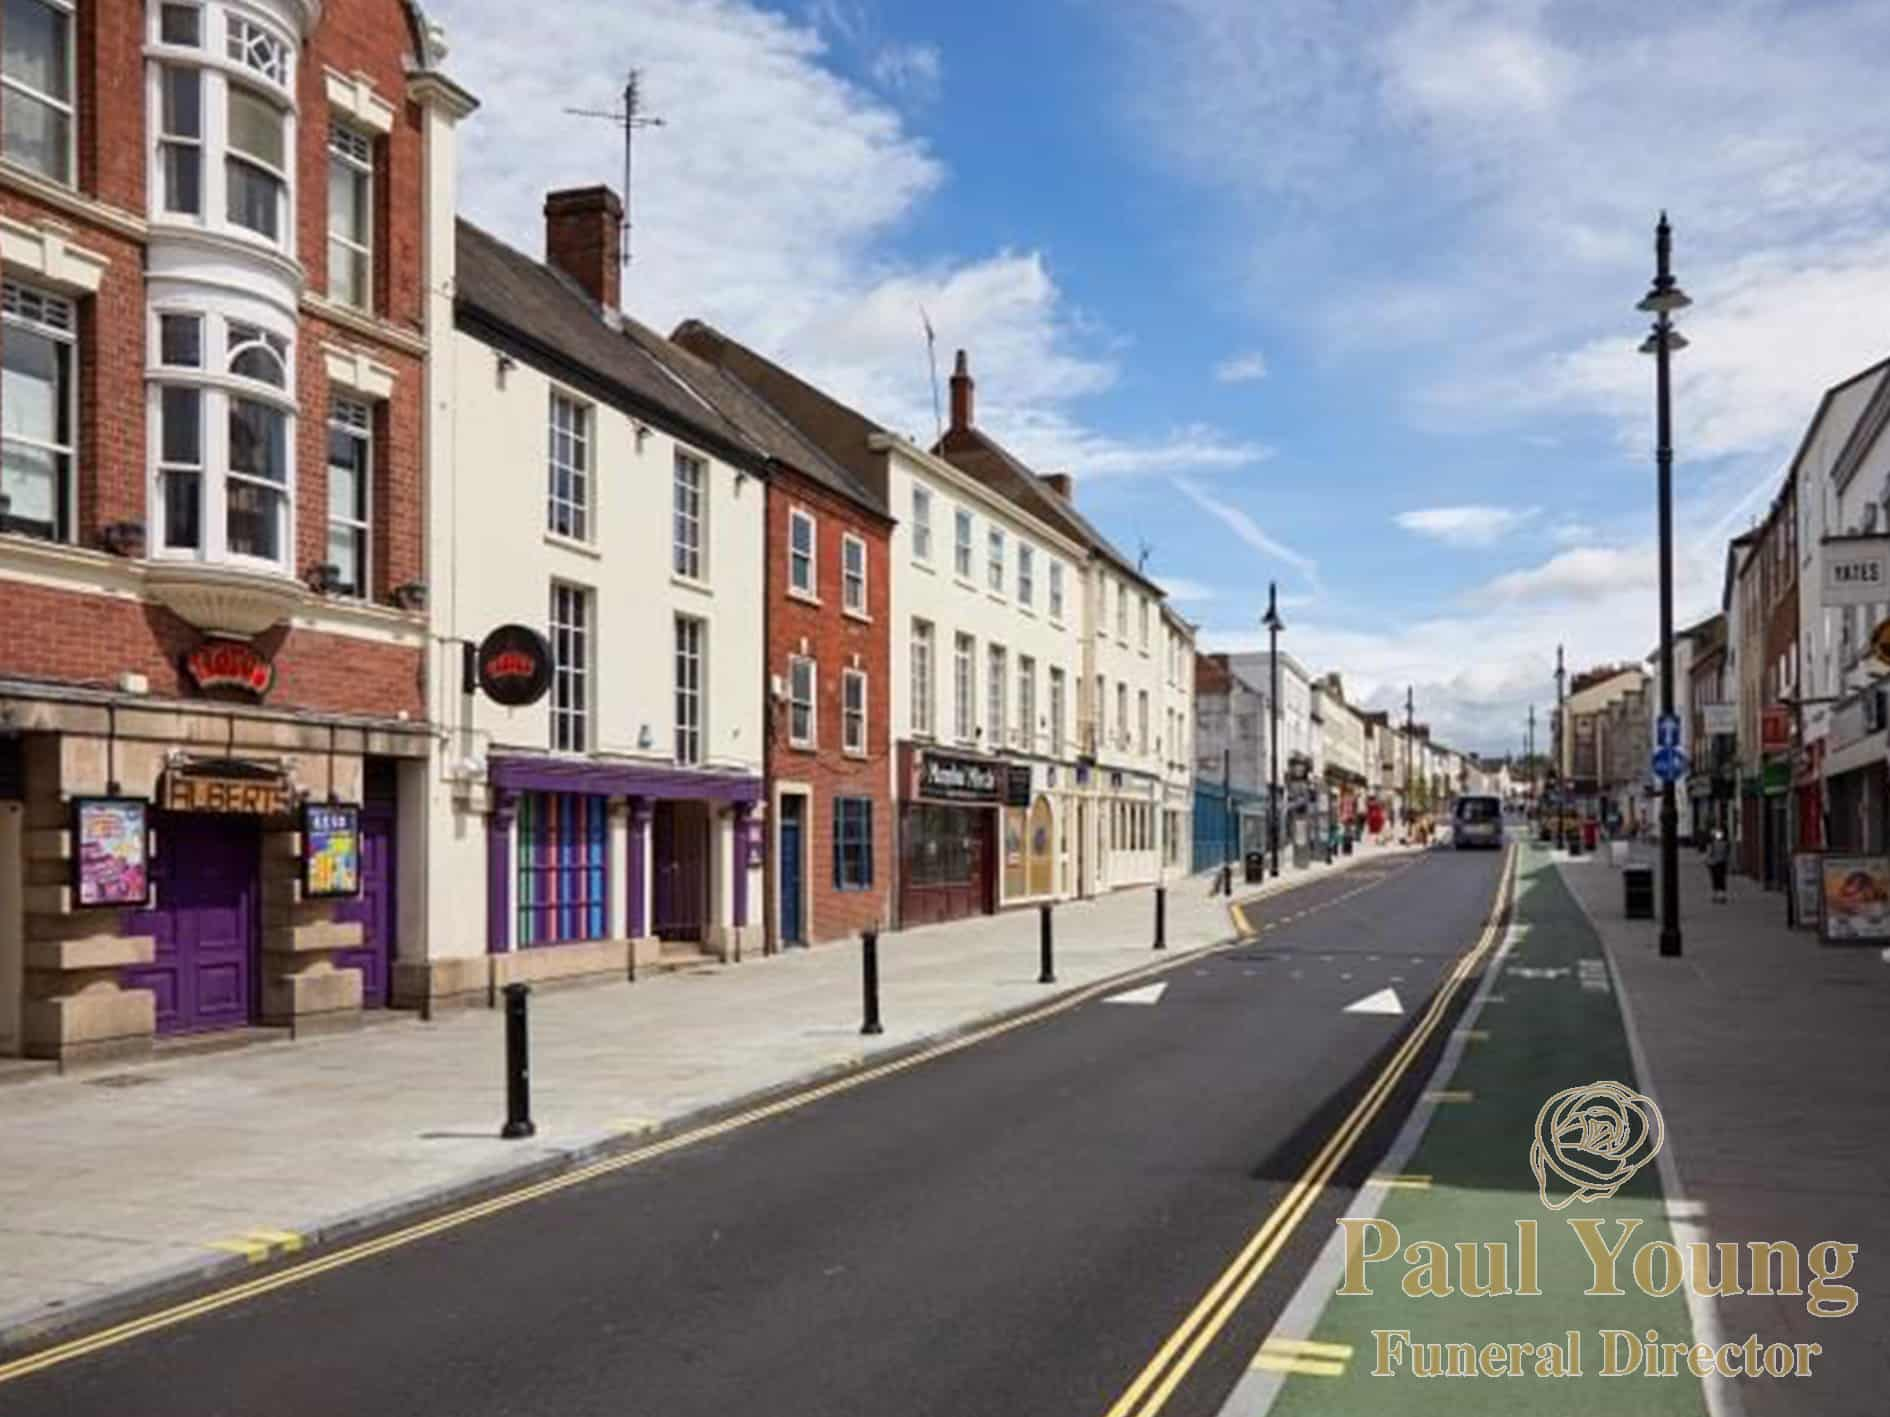 Doncaster Town Centre, Home of Doncaster Funeral Director